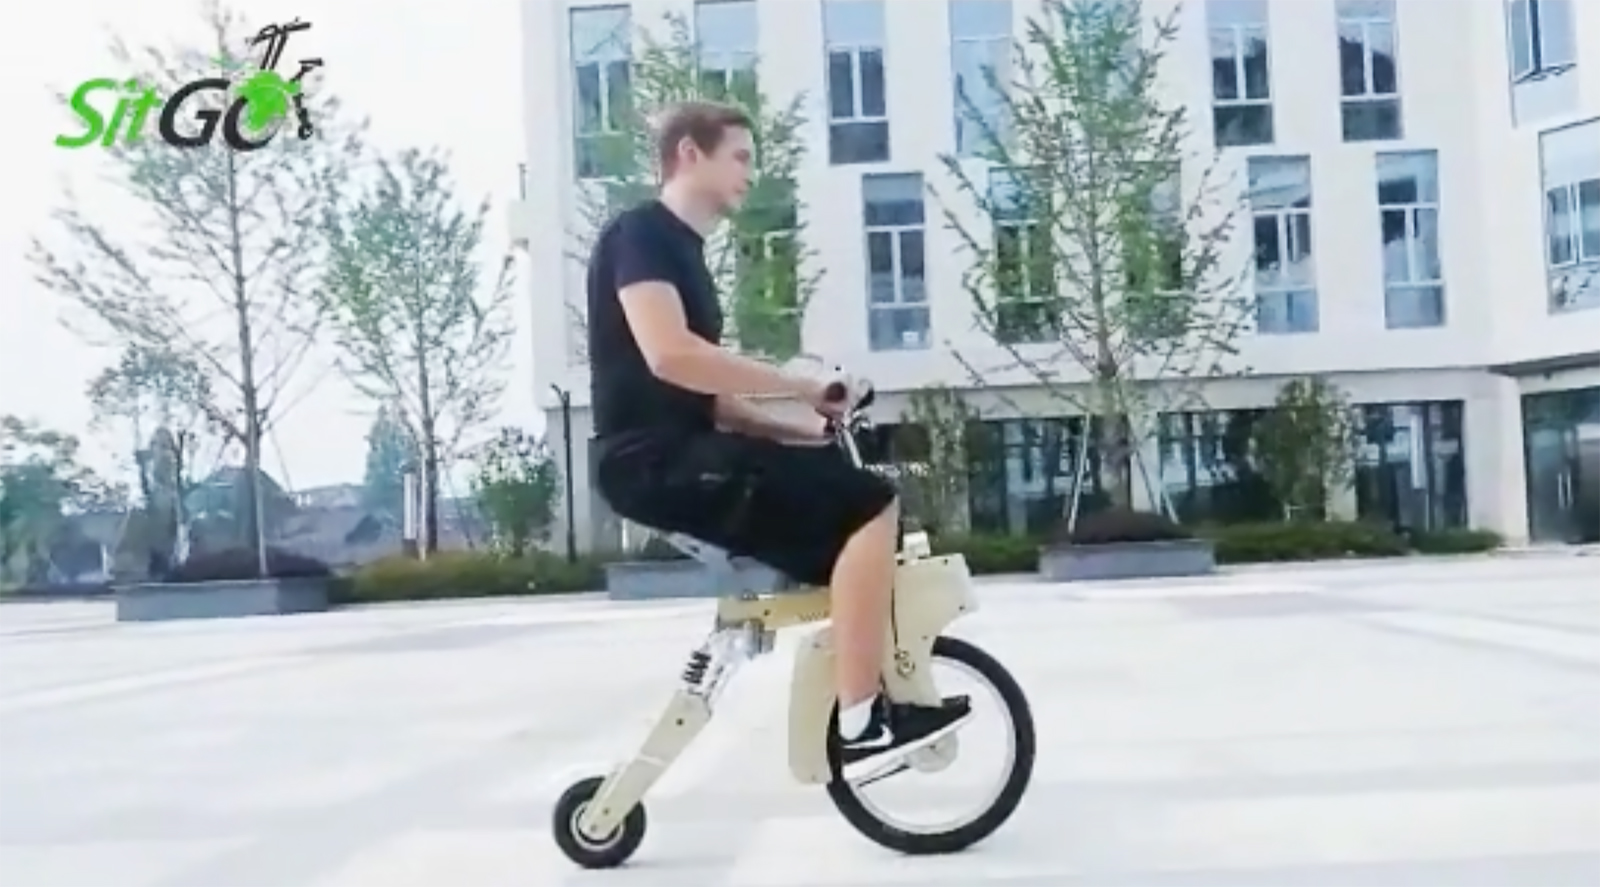 Sitgo Is A Foldable Electric Bike That Charges Using A